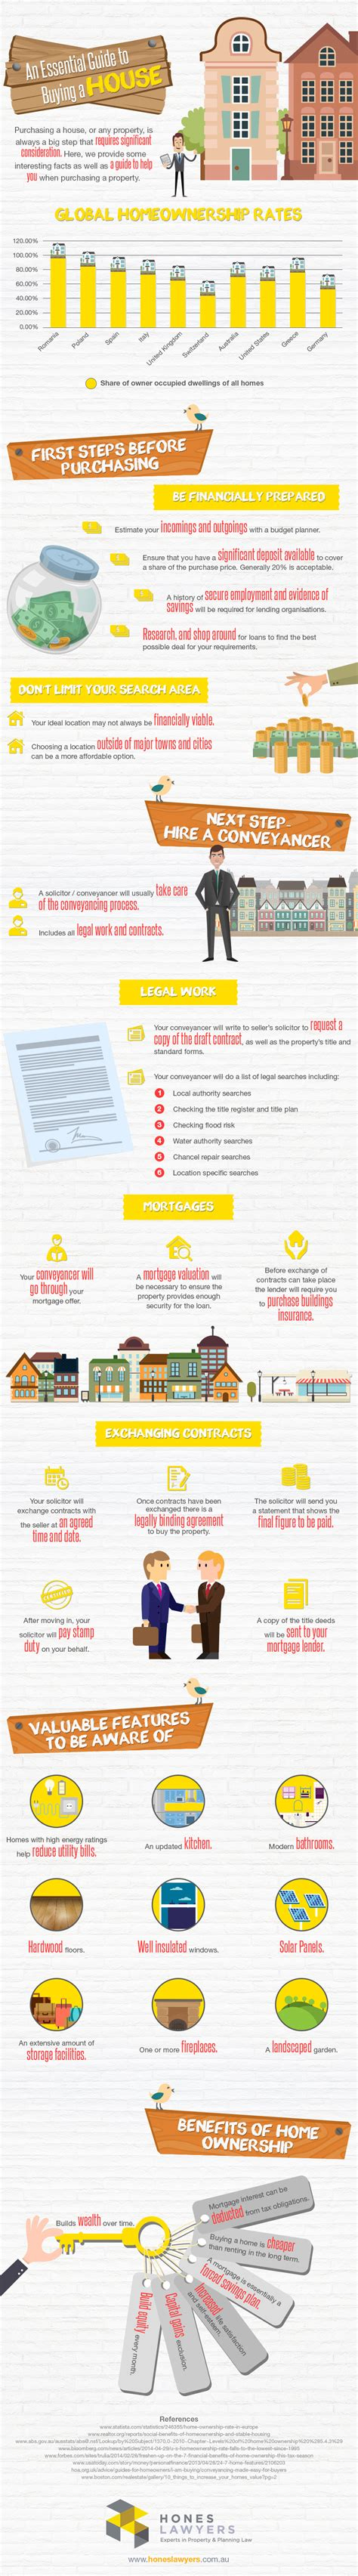 guide to buying a house infographic an essential guide to buying a house mytoba ca news